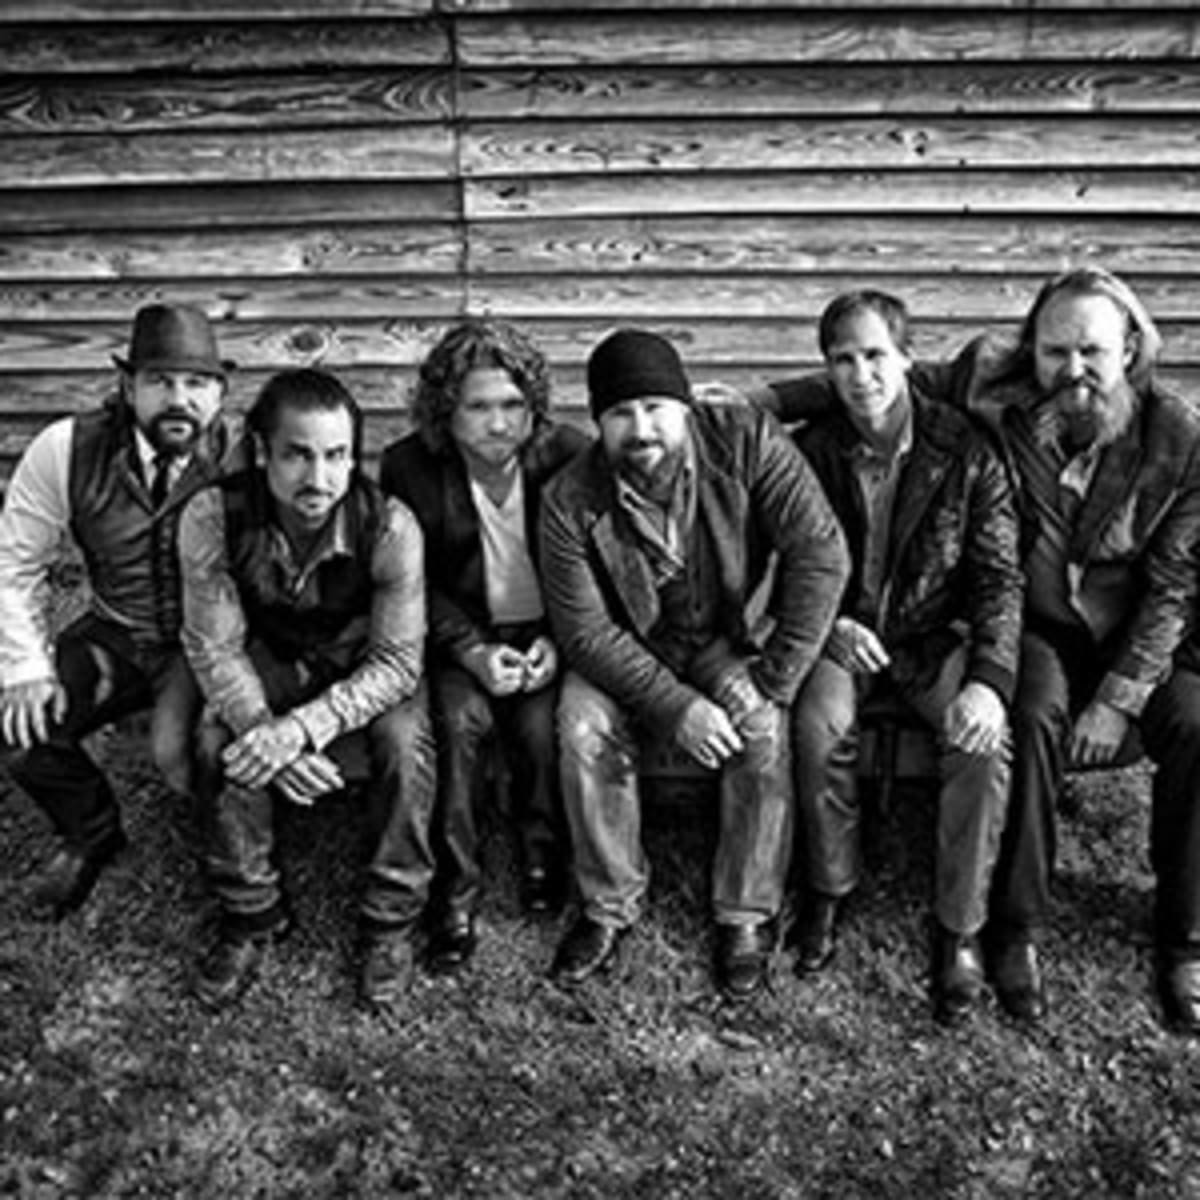 RodeoHouston 2014 concert: Zac Brown Band